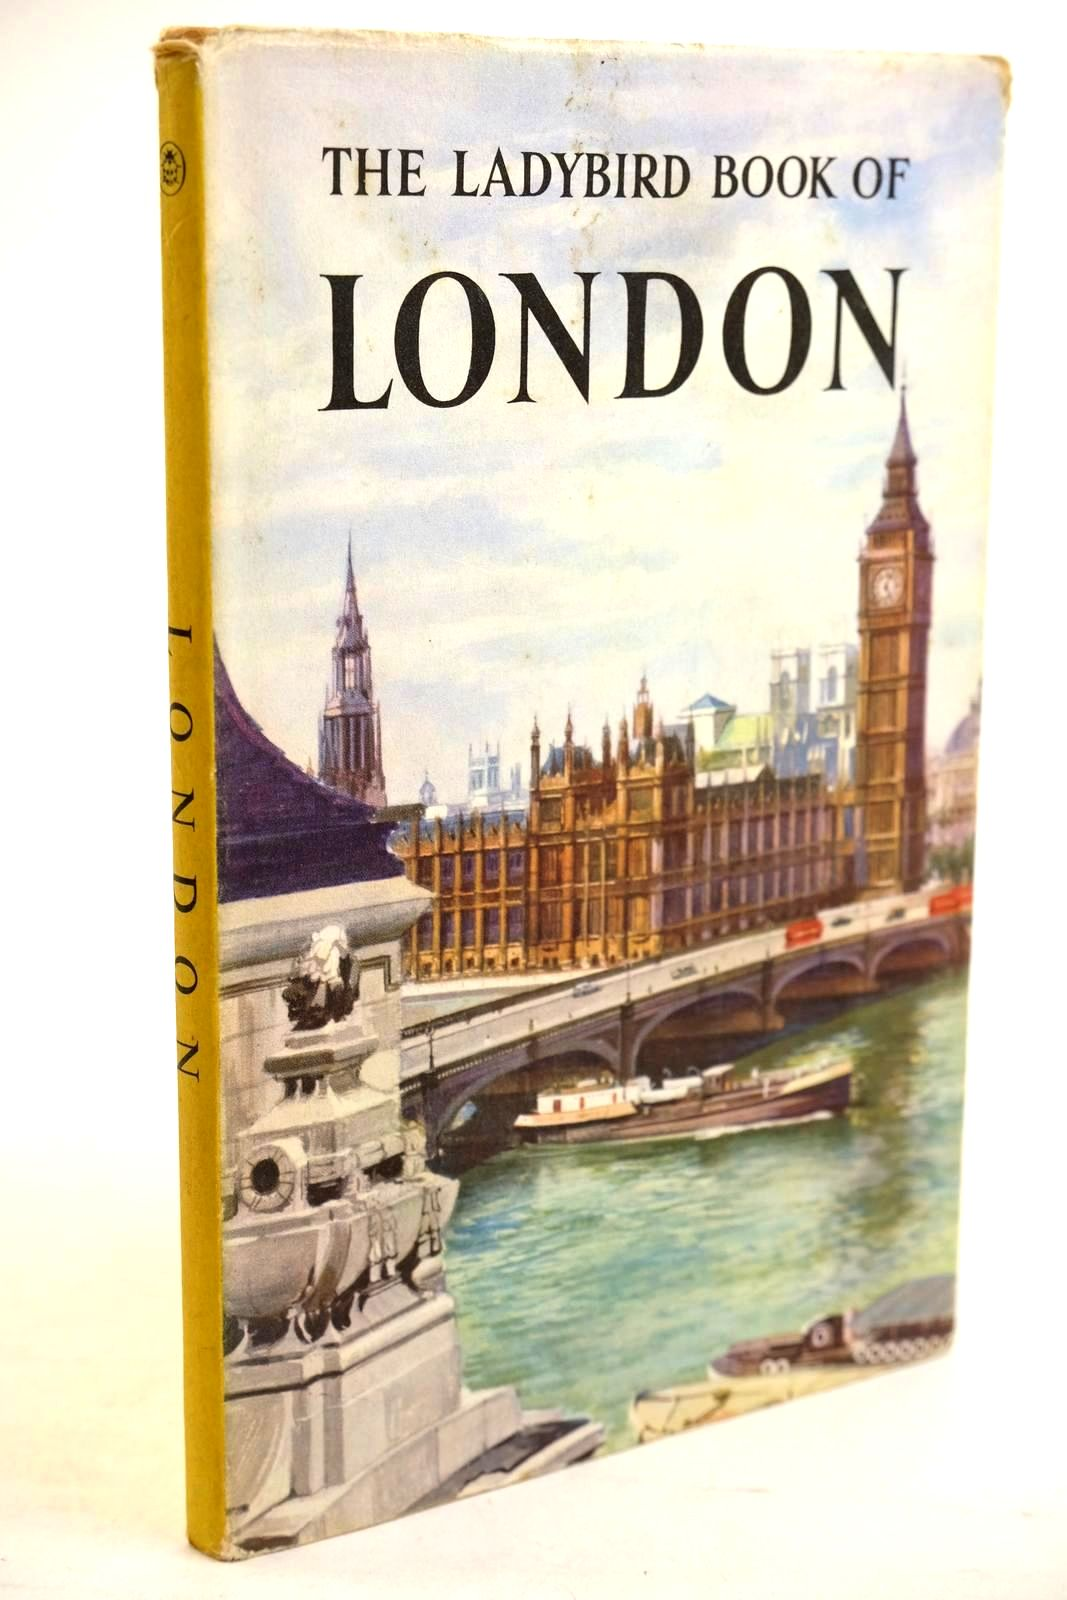 Photo of THE LADYBIRD BOOK OF LONDON written by Lewesdon, John illustrated by Berry, John published by Wills & Hepworth Ltd. (STOCK CODE: 1320642)  for sale by Stella & Rose's Books